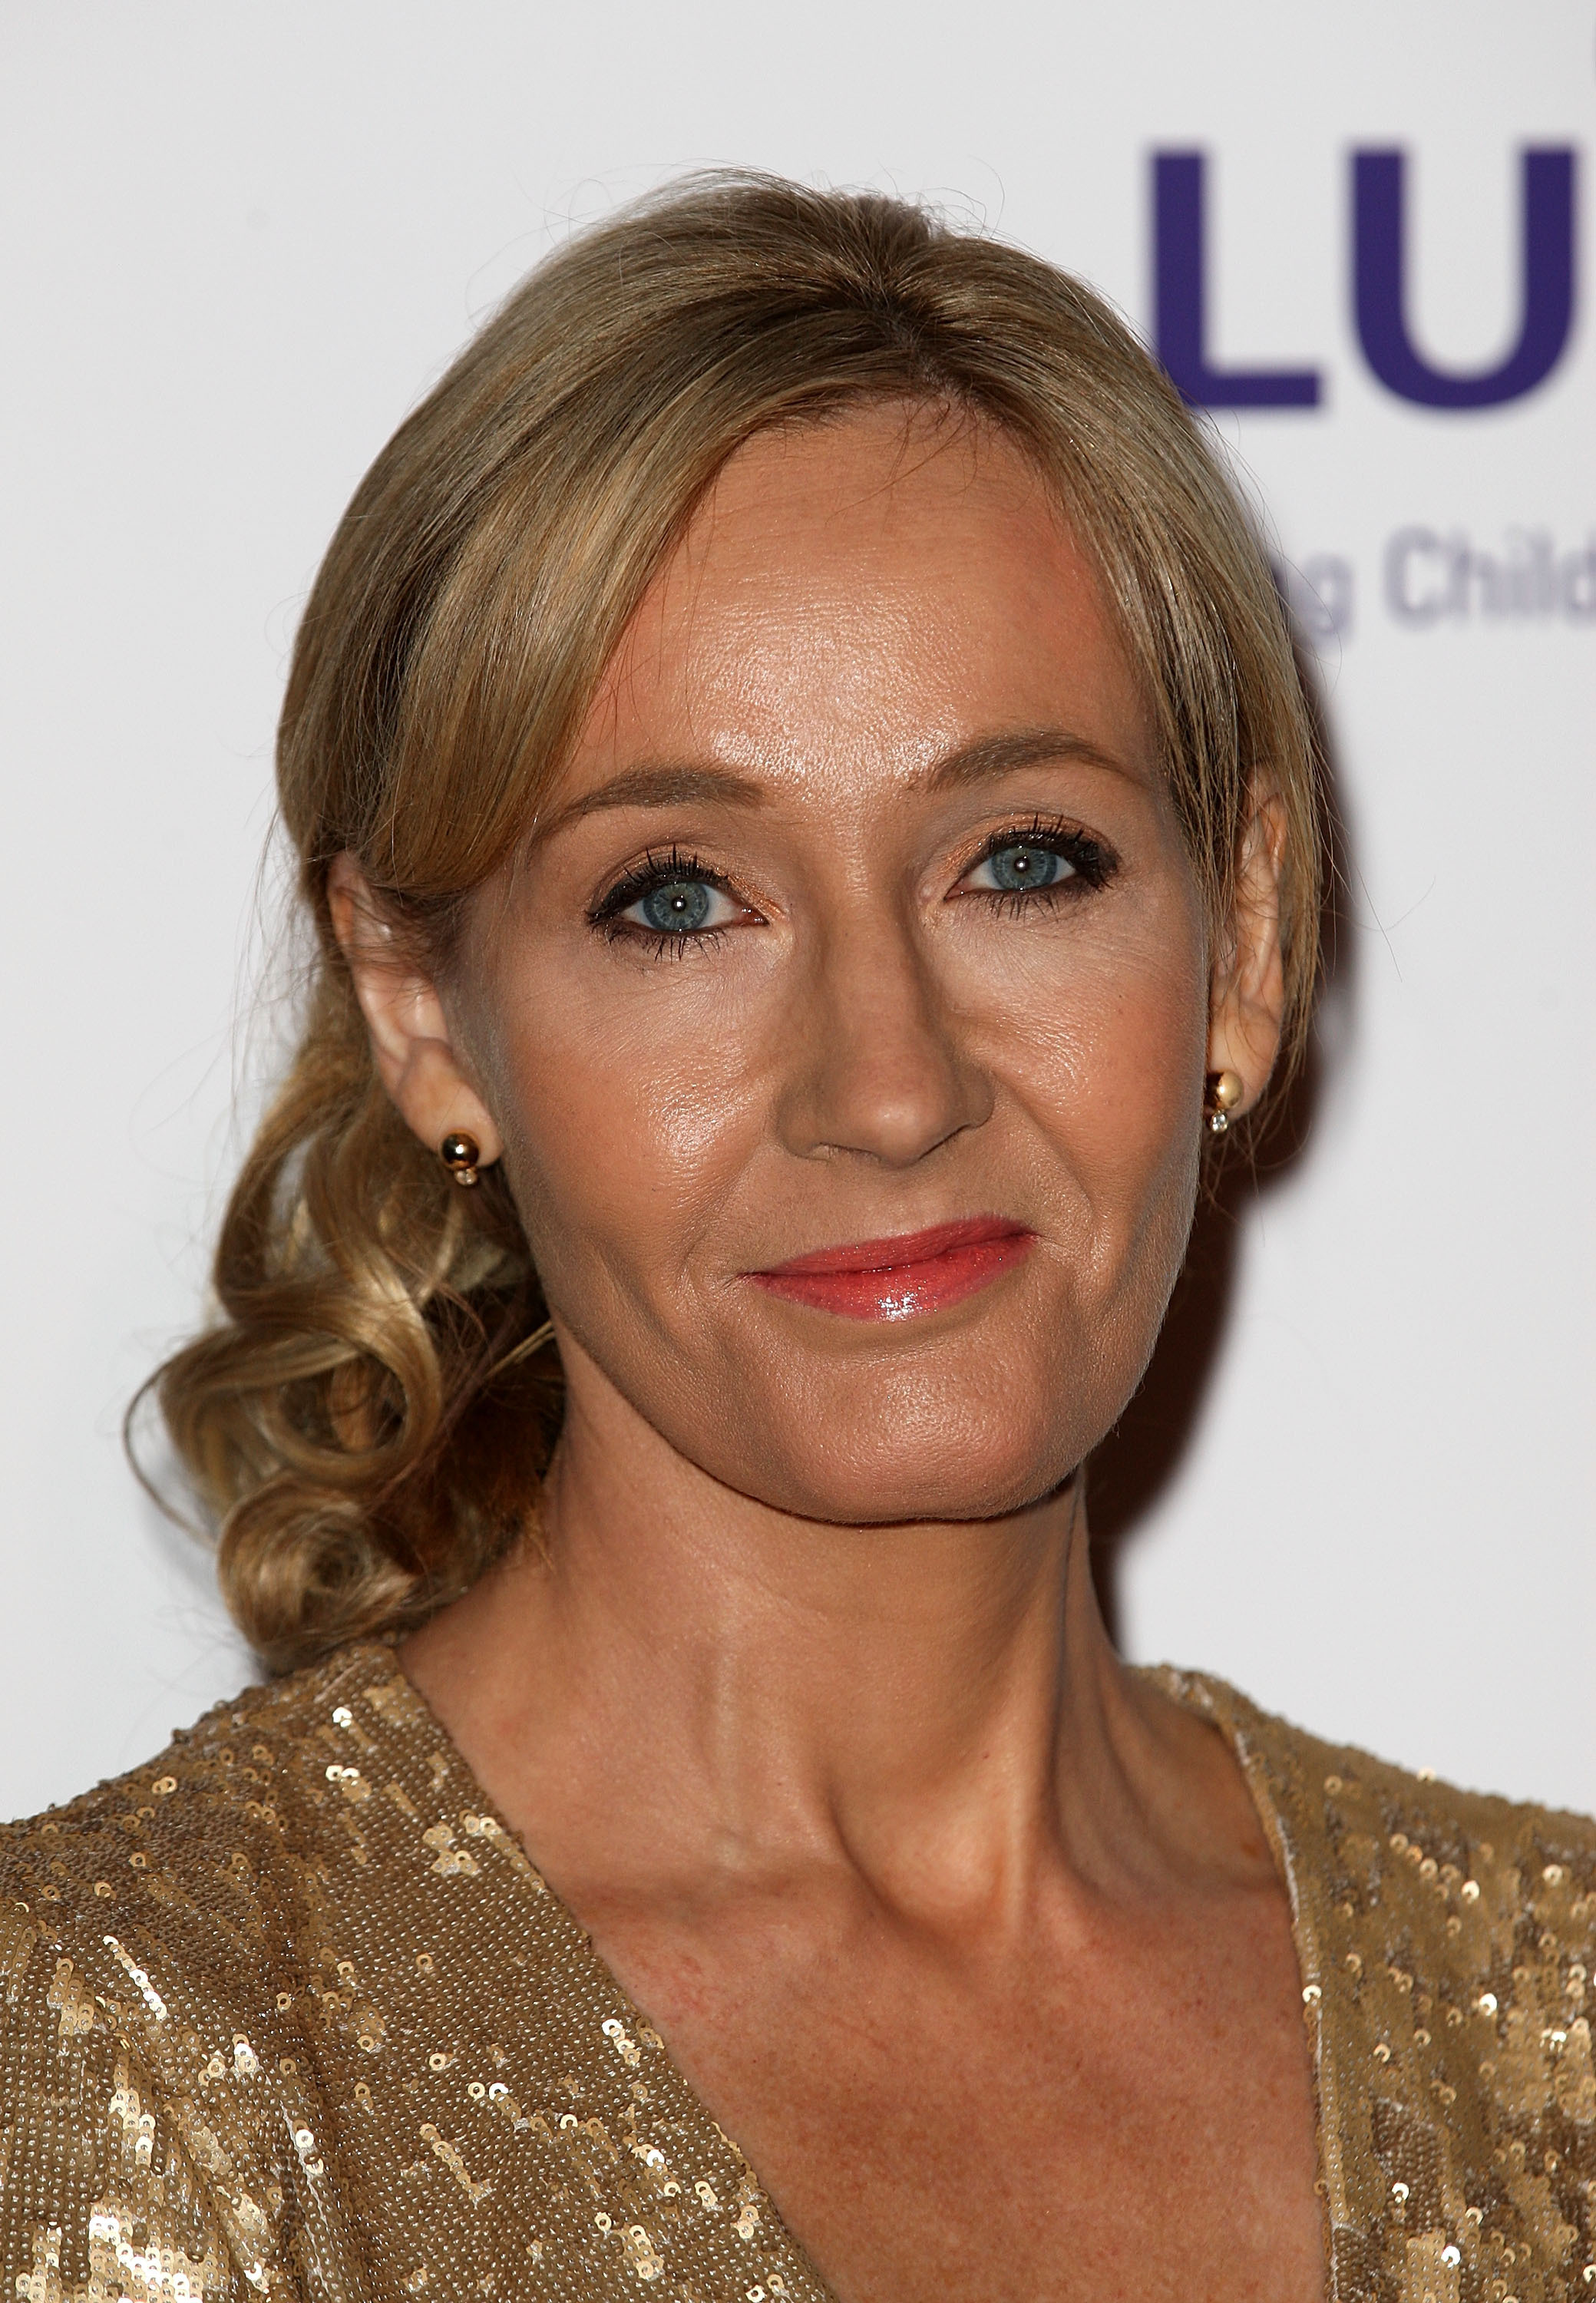 J.K. Rowling Just Dropped Some Intriguing New Info On American Wizards